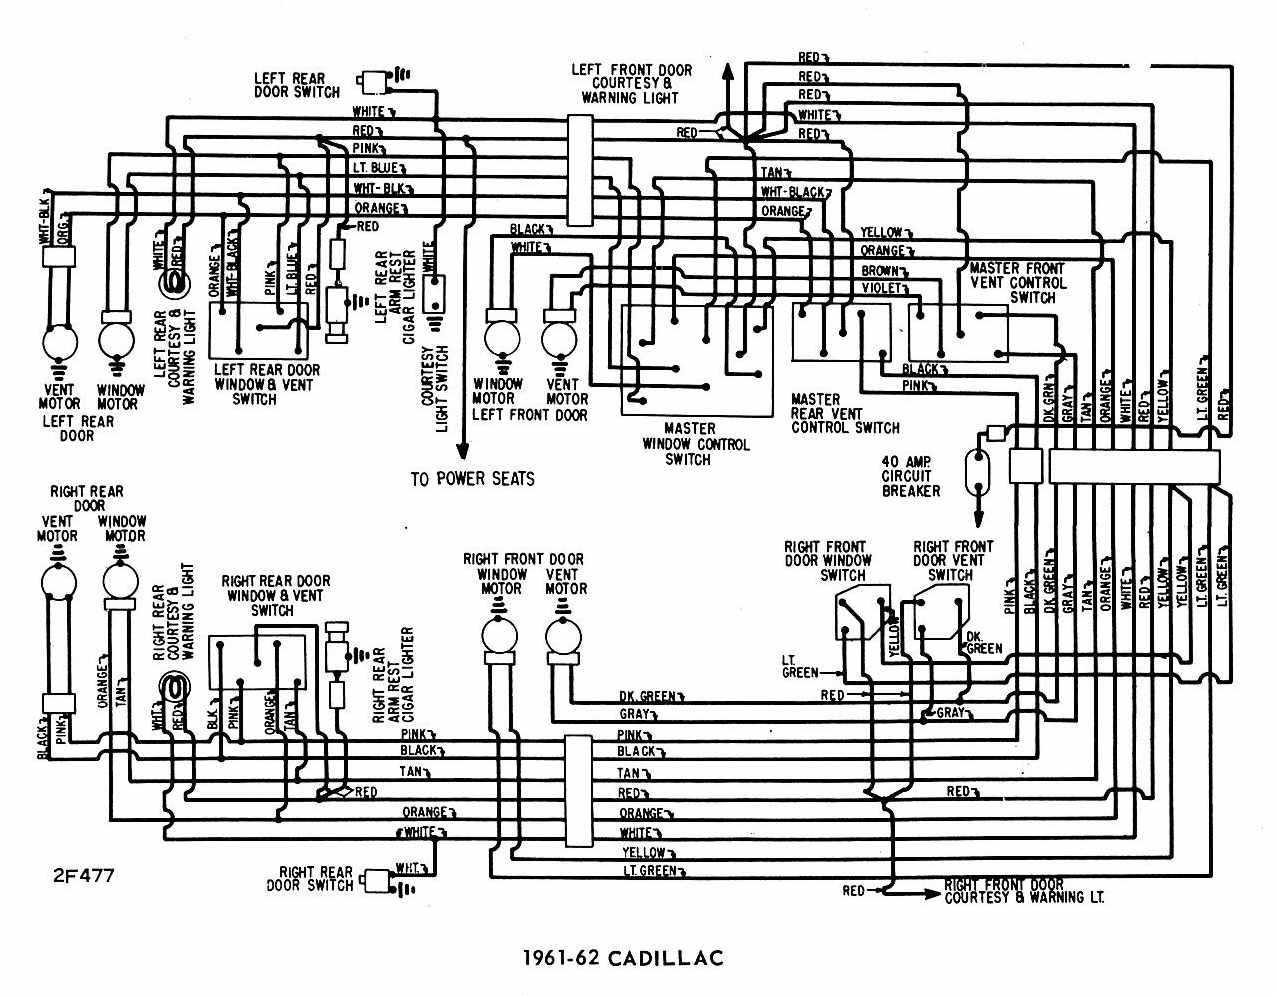 Cadillac Escalade Engine Diagram Wiring Libraries Peterbilt 2004 Todayscadillac Cts Car Stereo Free Picture Simple